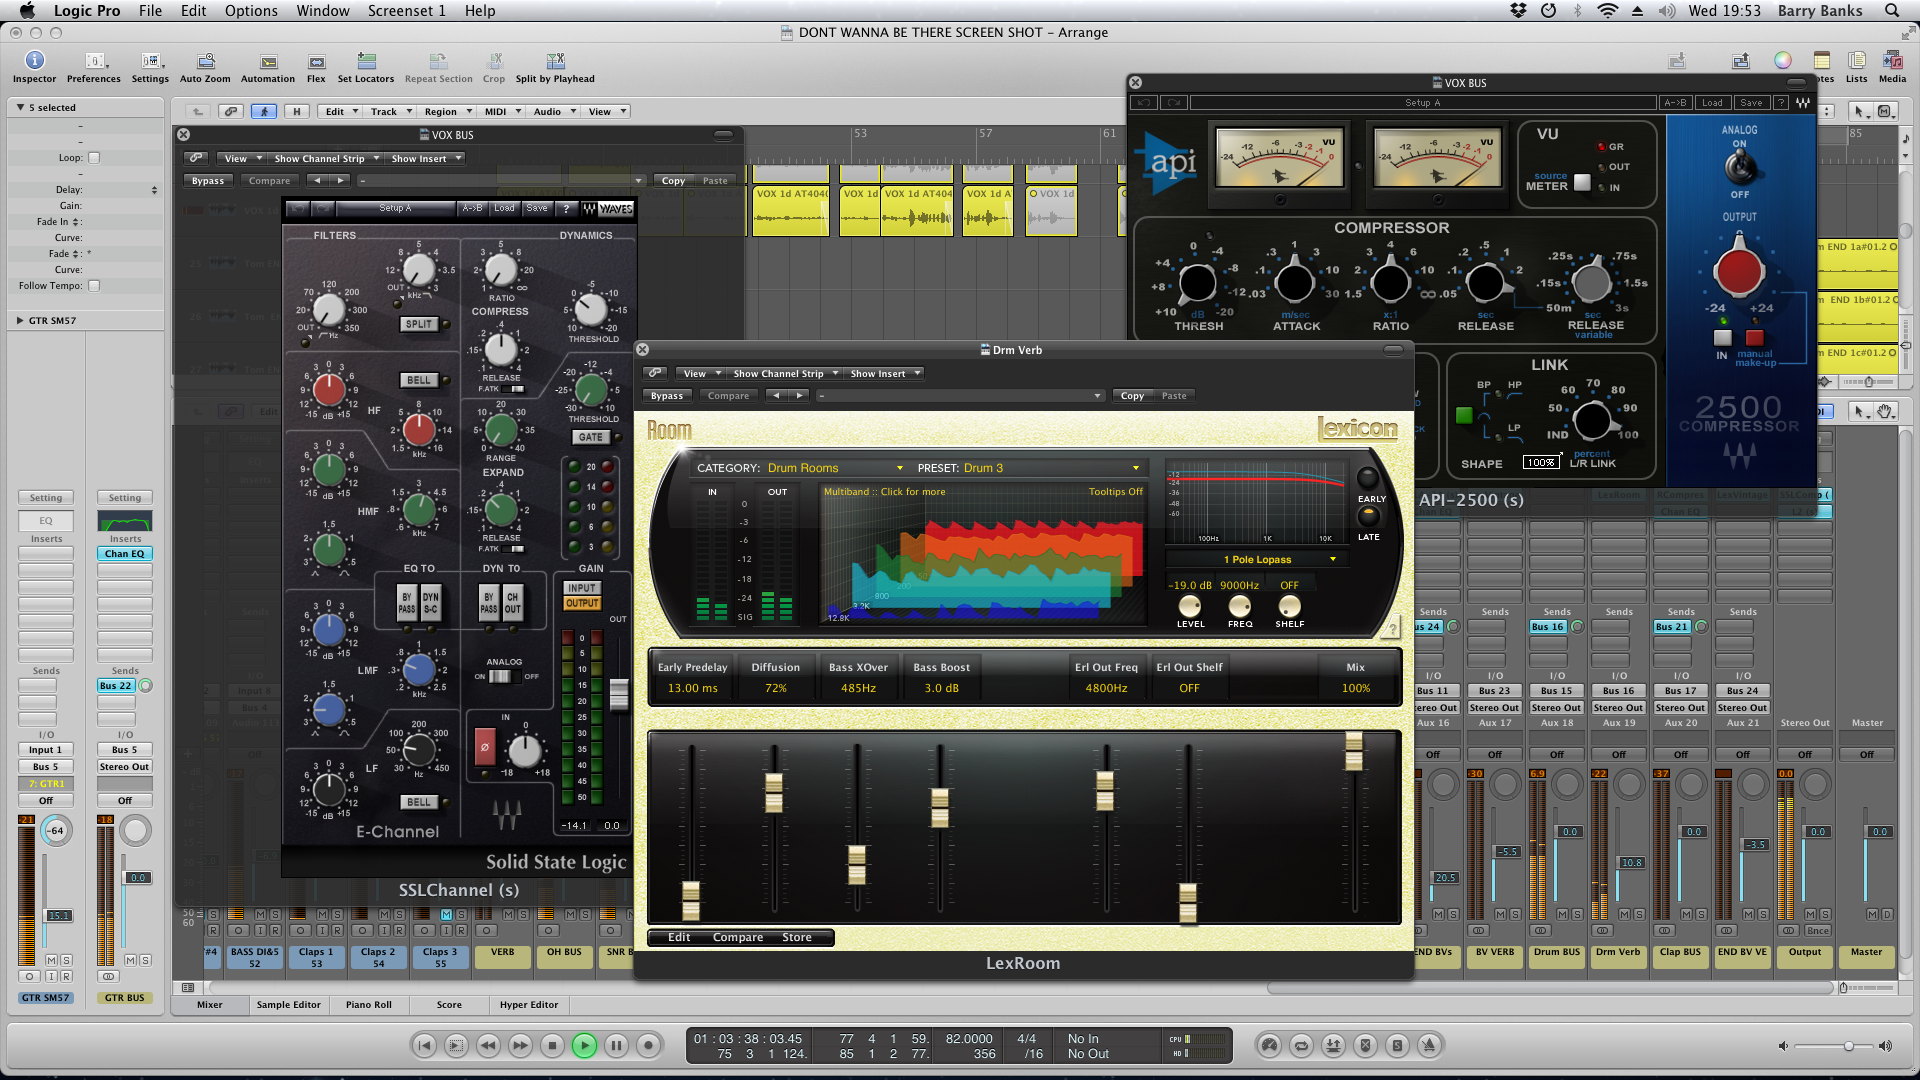 Logic Pro / Waves screen shot